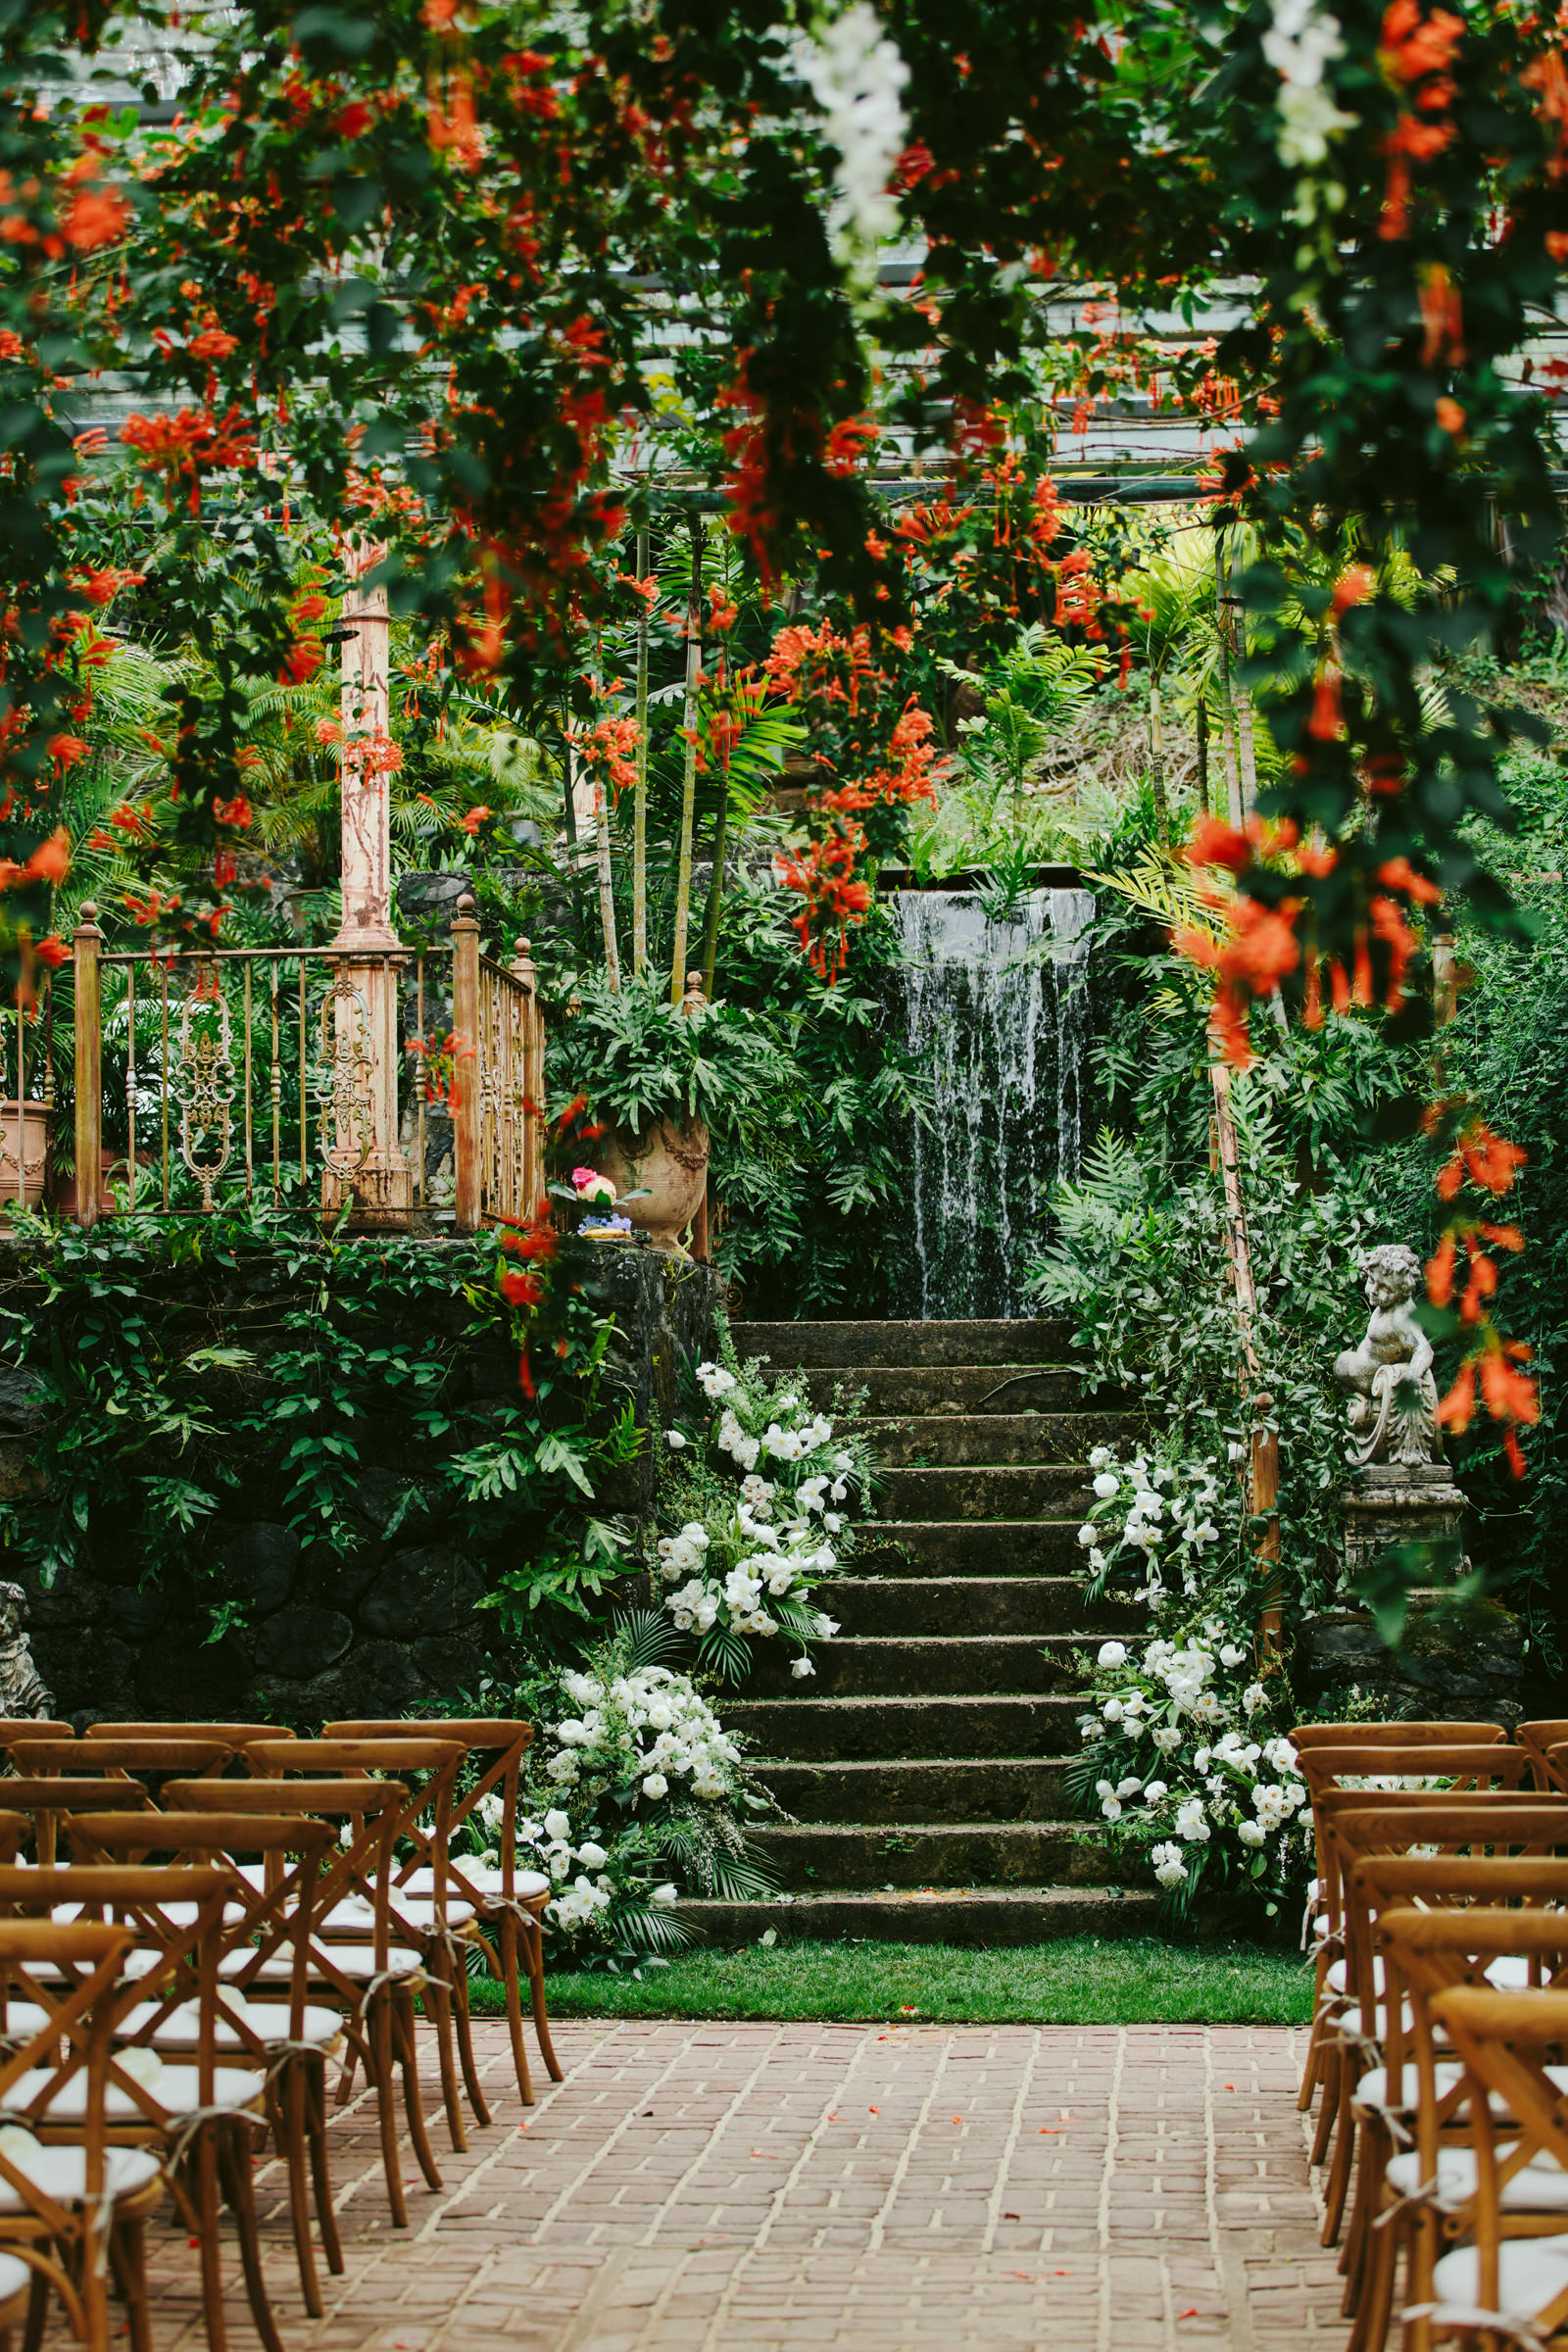 Beautiful ceremony decor - photo by Melia Lucida